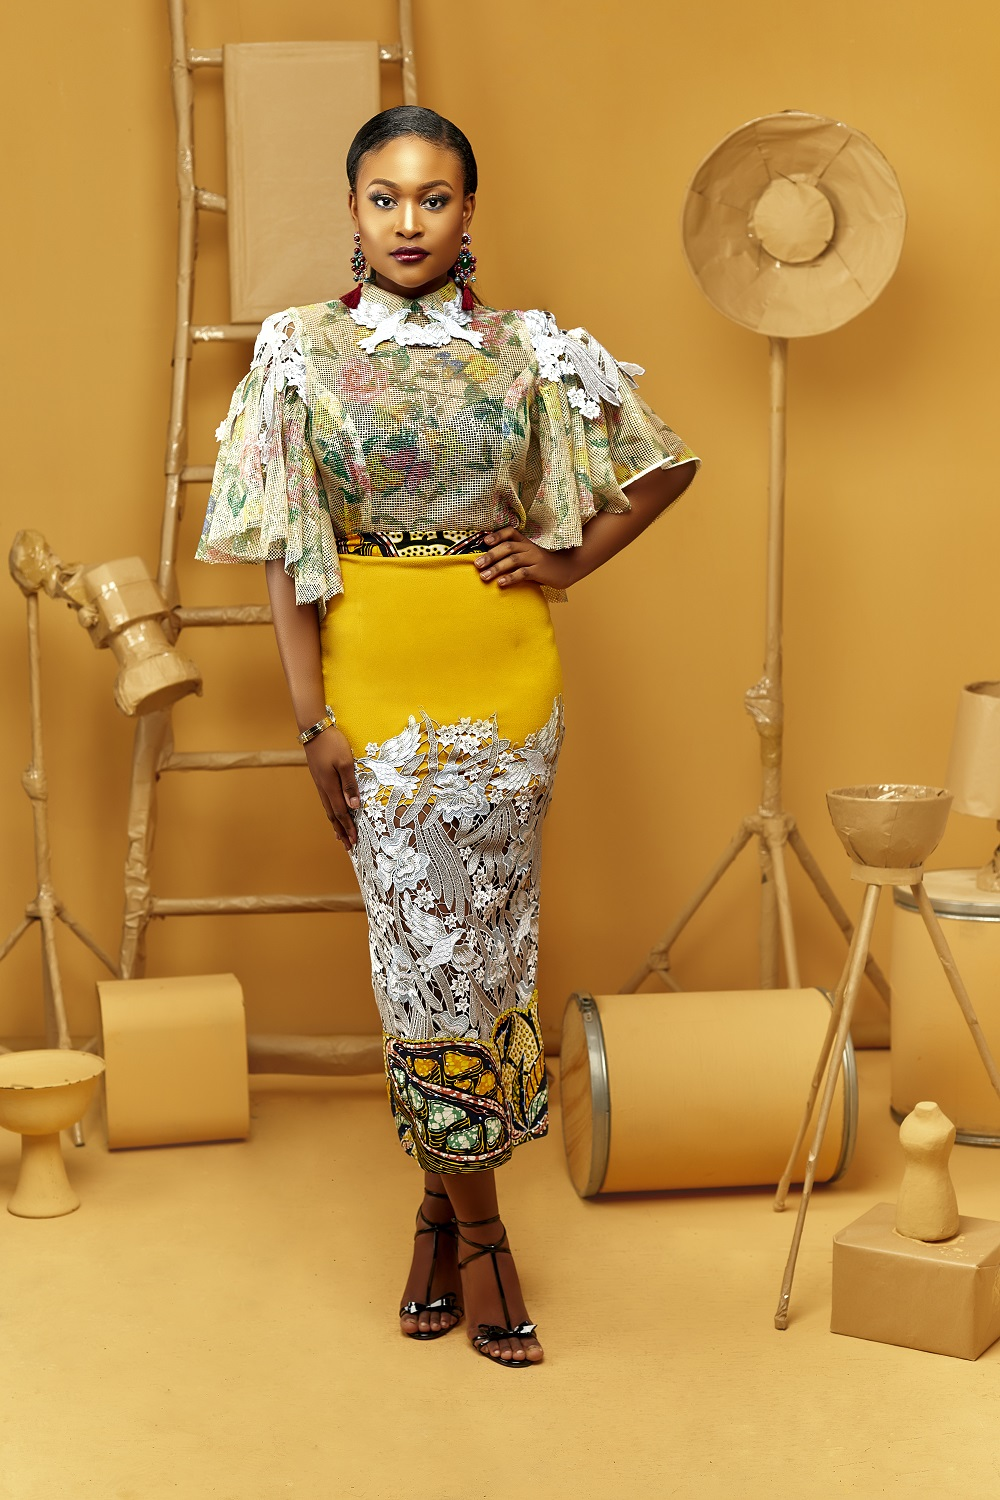 PistisGh's Ready-to-Wear Collection is Here… And it's Everything We Hoped For